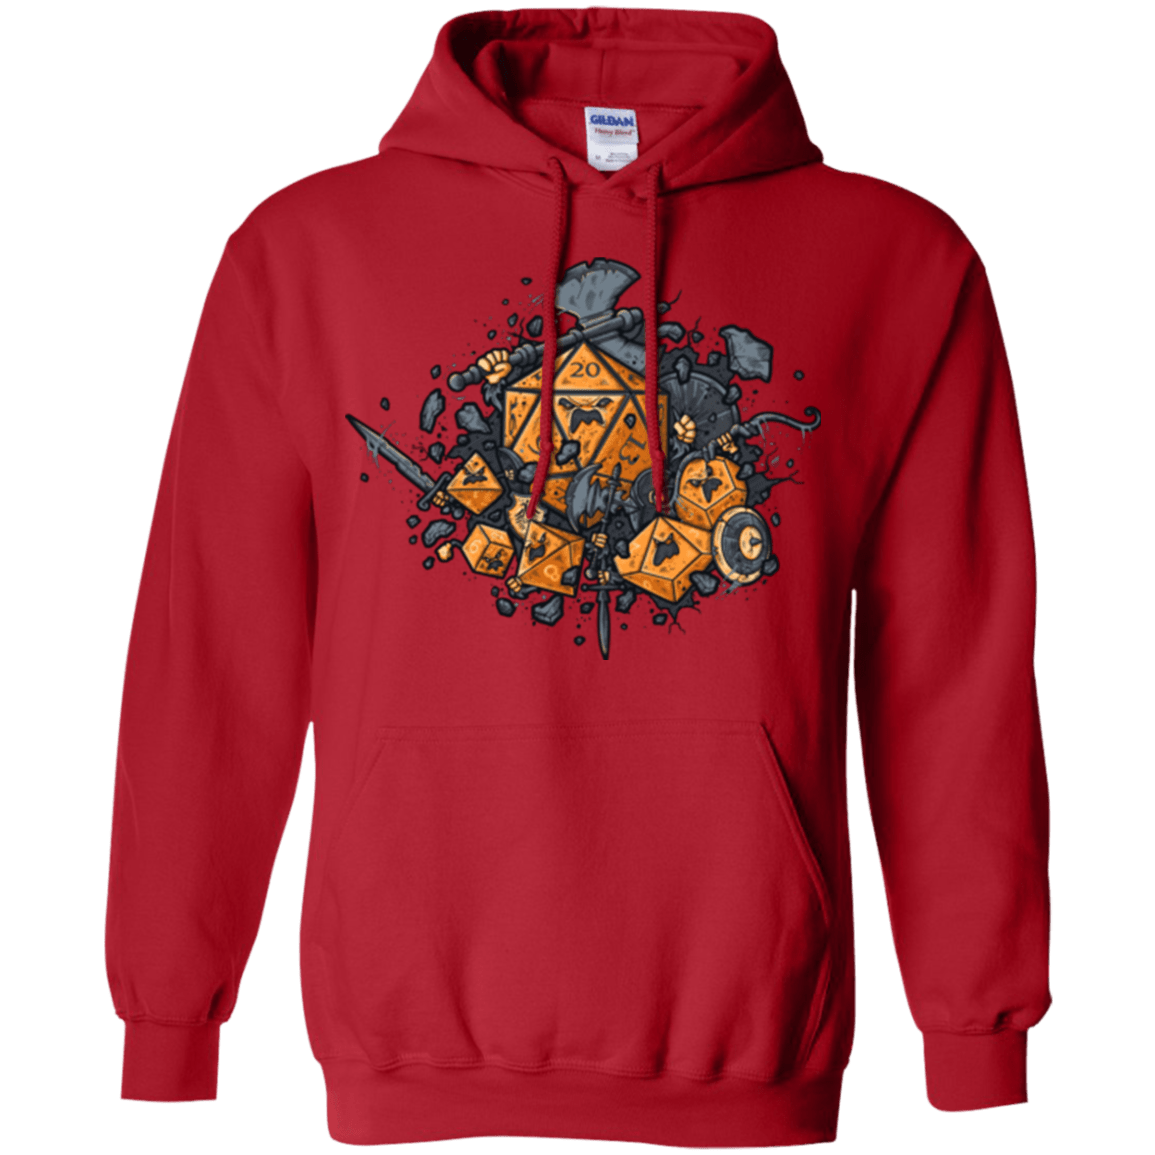 Sweatshirts Red / Small RPG UNITED Pullover Hoodie